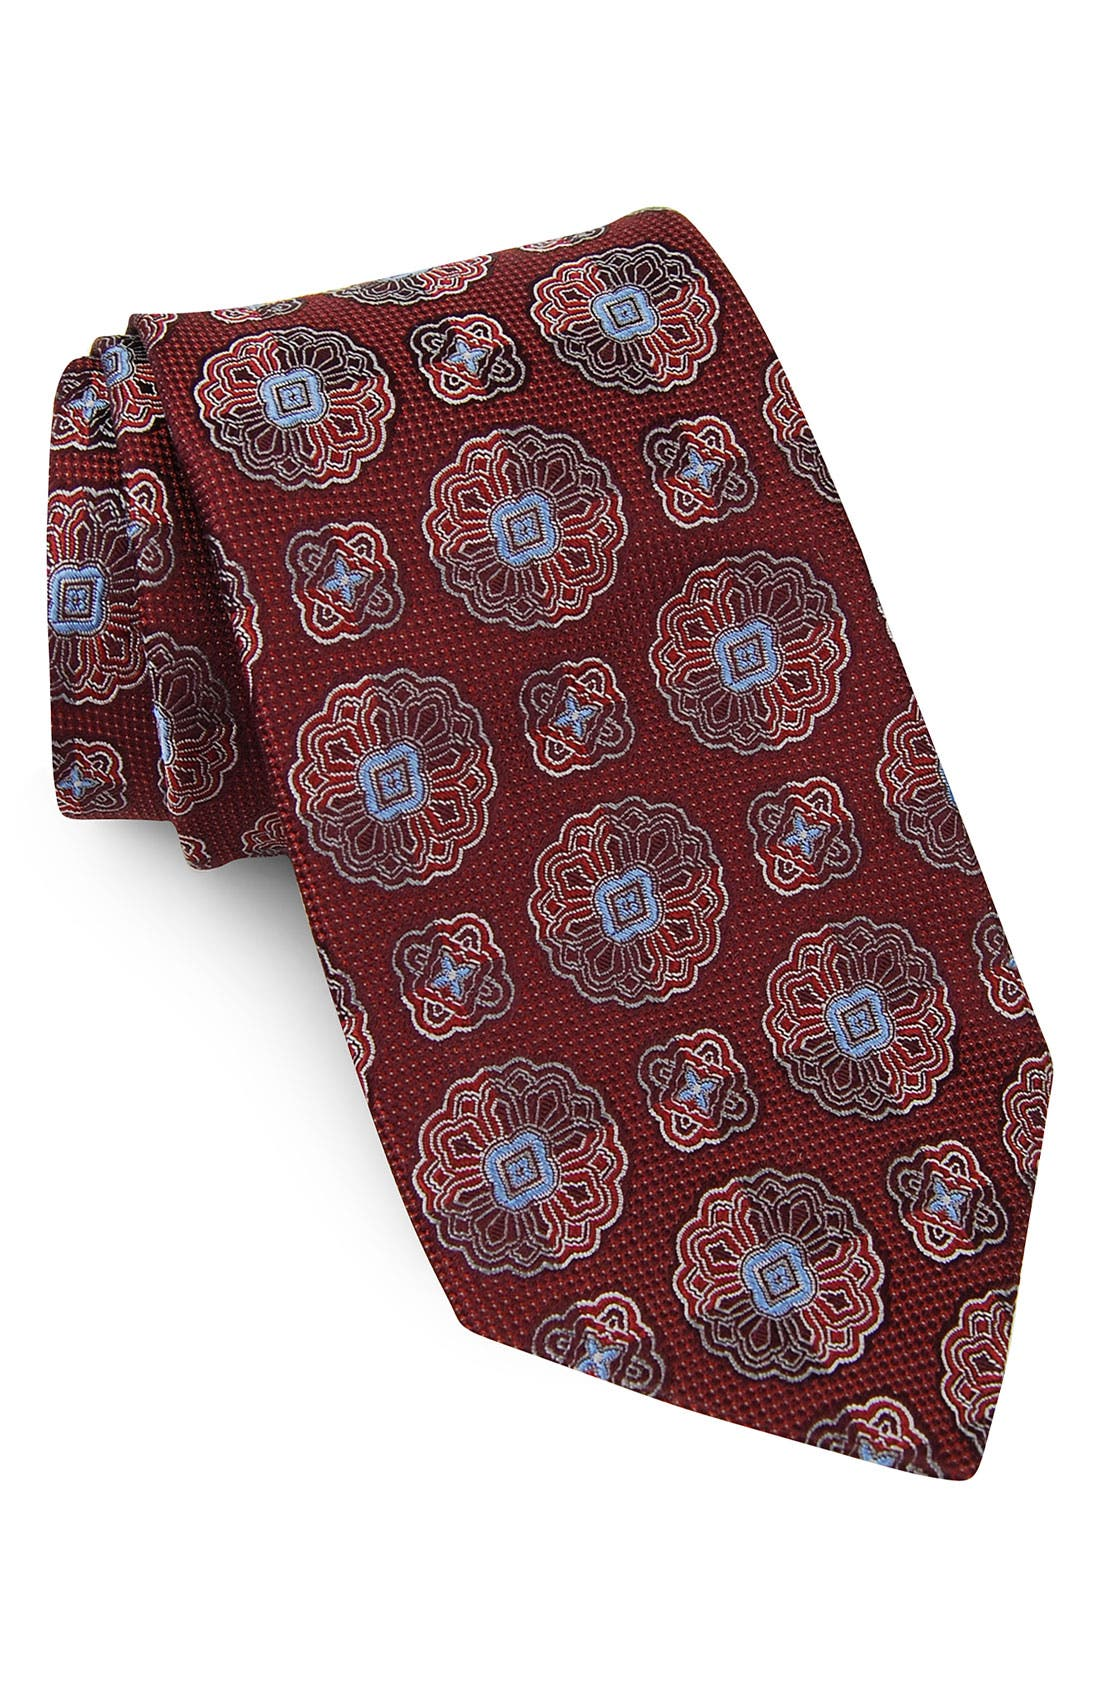 Alternate Image 1 Selected - John W. Nordstrom® 'Neat Peat' Woven Silk Tie